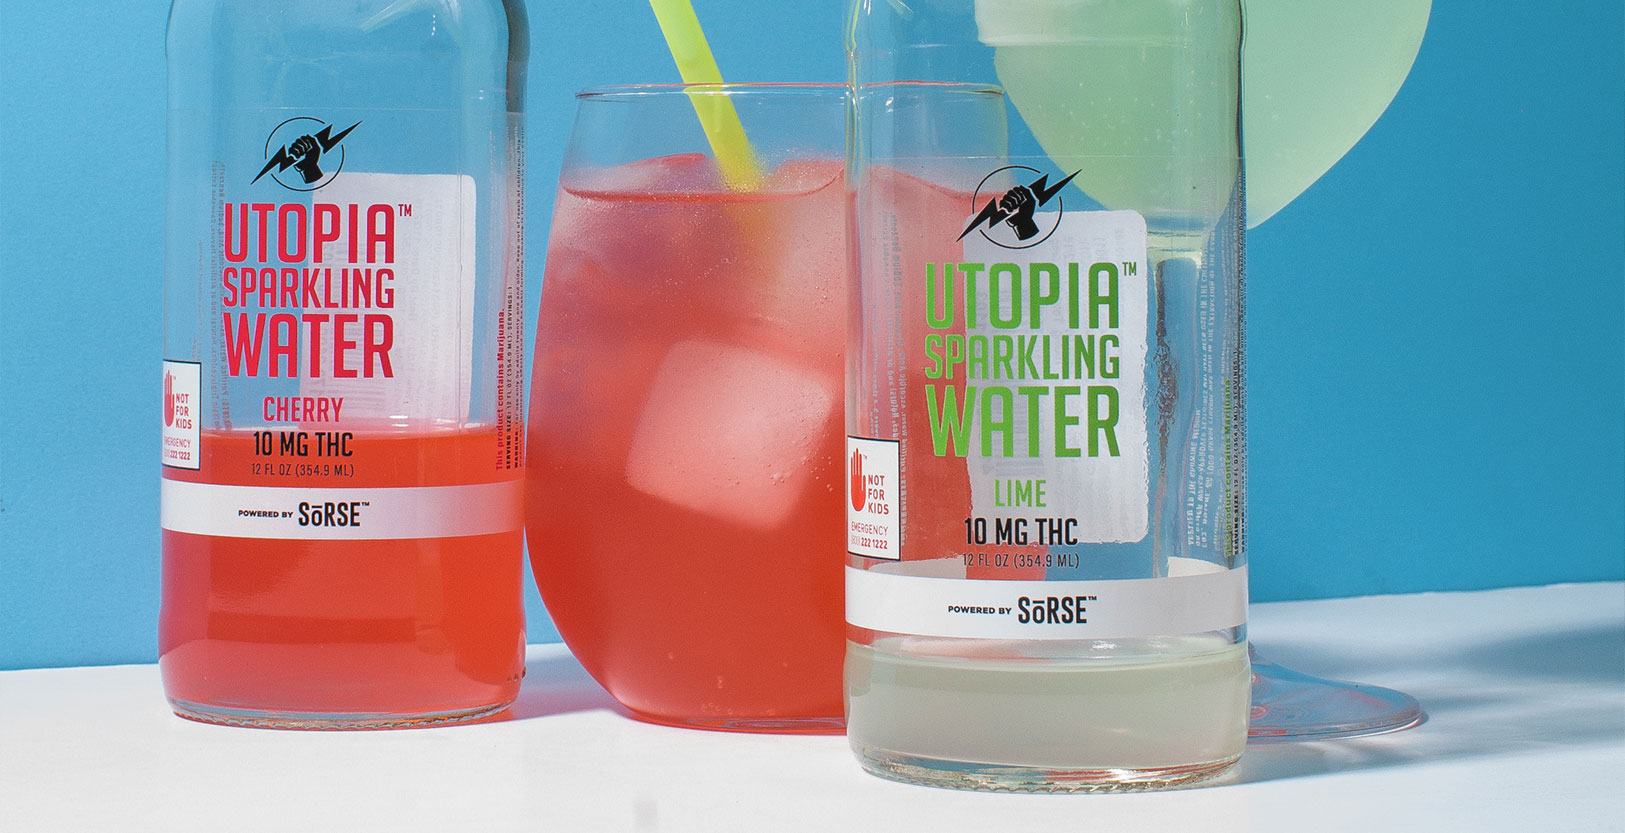 Utopia Sparkling Water by Tarukino